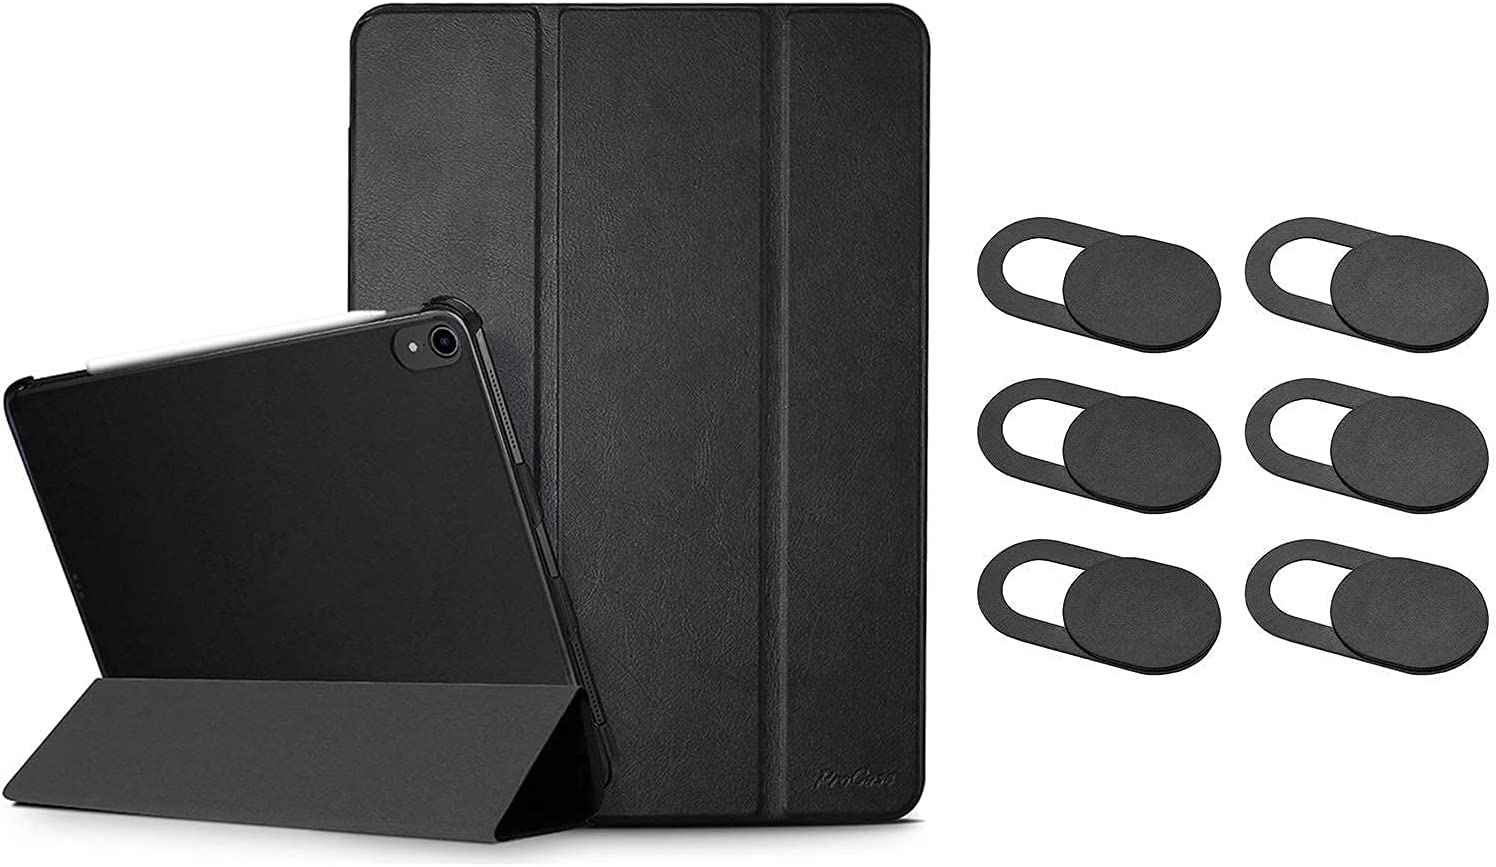 ProCase Black iPad Credence Pro 11 Slim Generation 2nd Inexpensive Case 2020 Stand